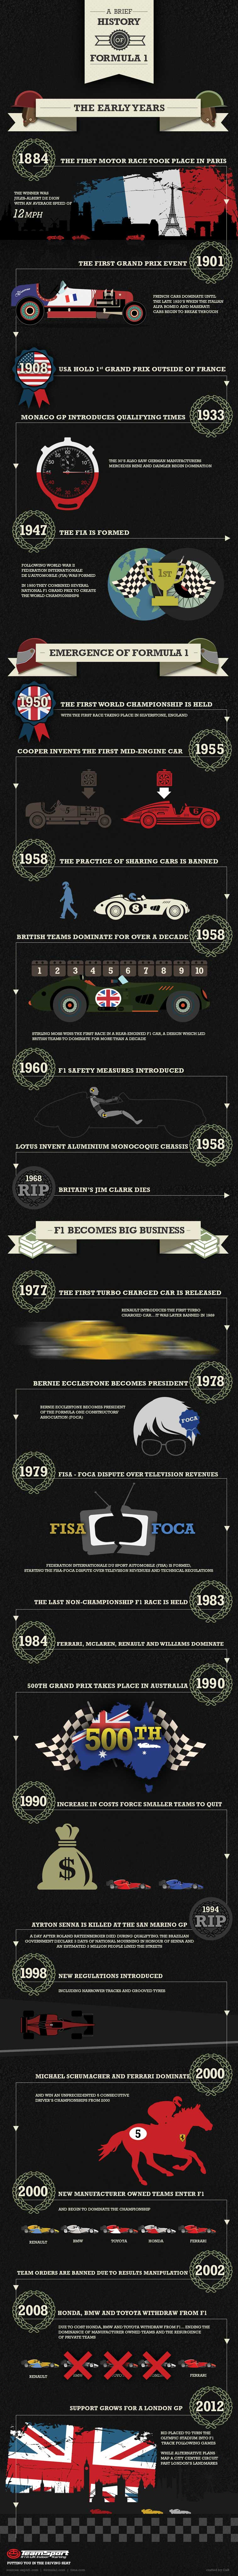 TeamSport Go Karting F1 Infographic